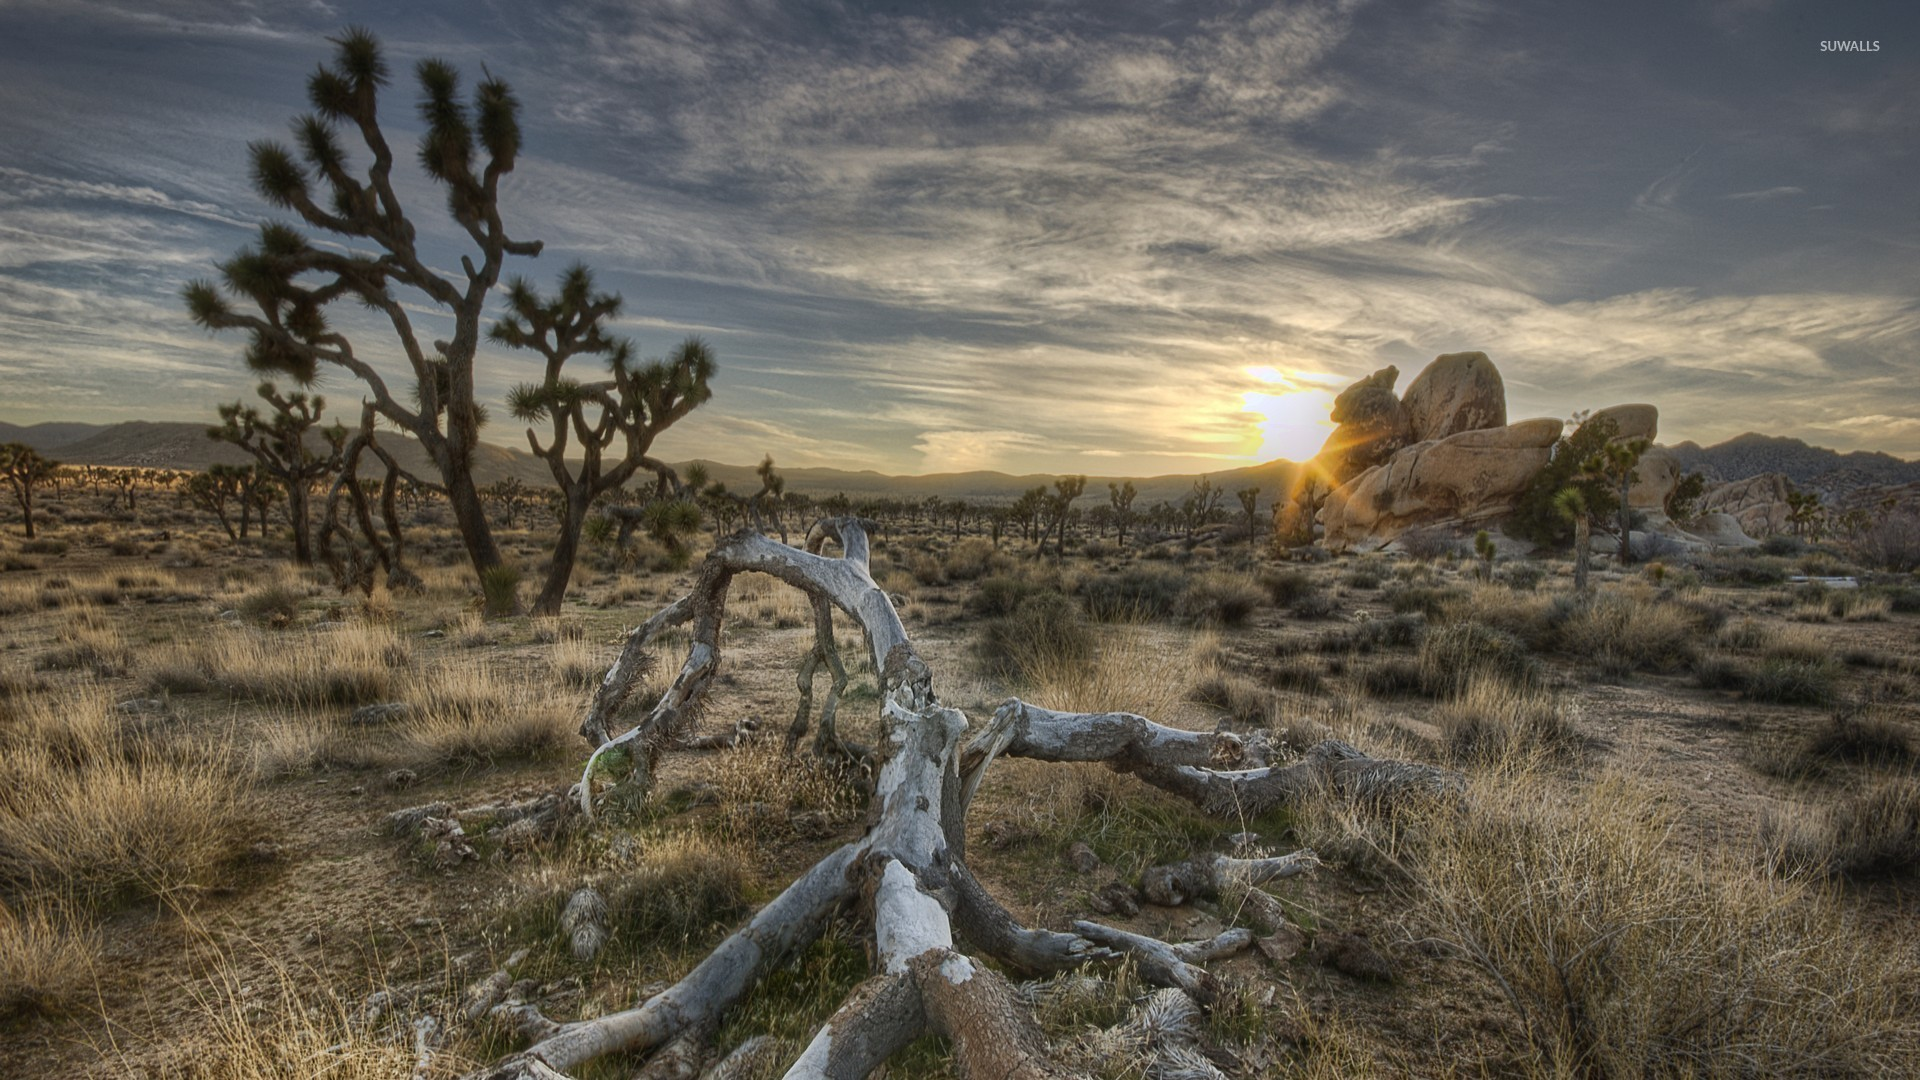 joshua tree national park [3] wallpaper - nature wallpapers - #45130